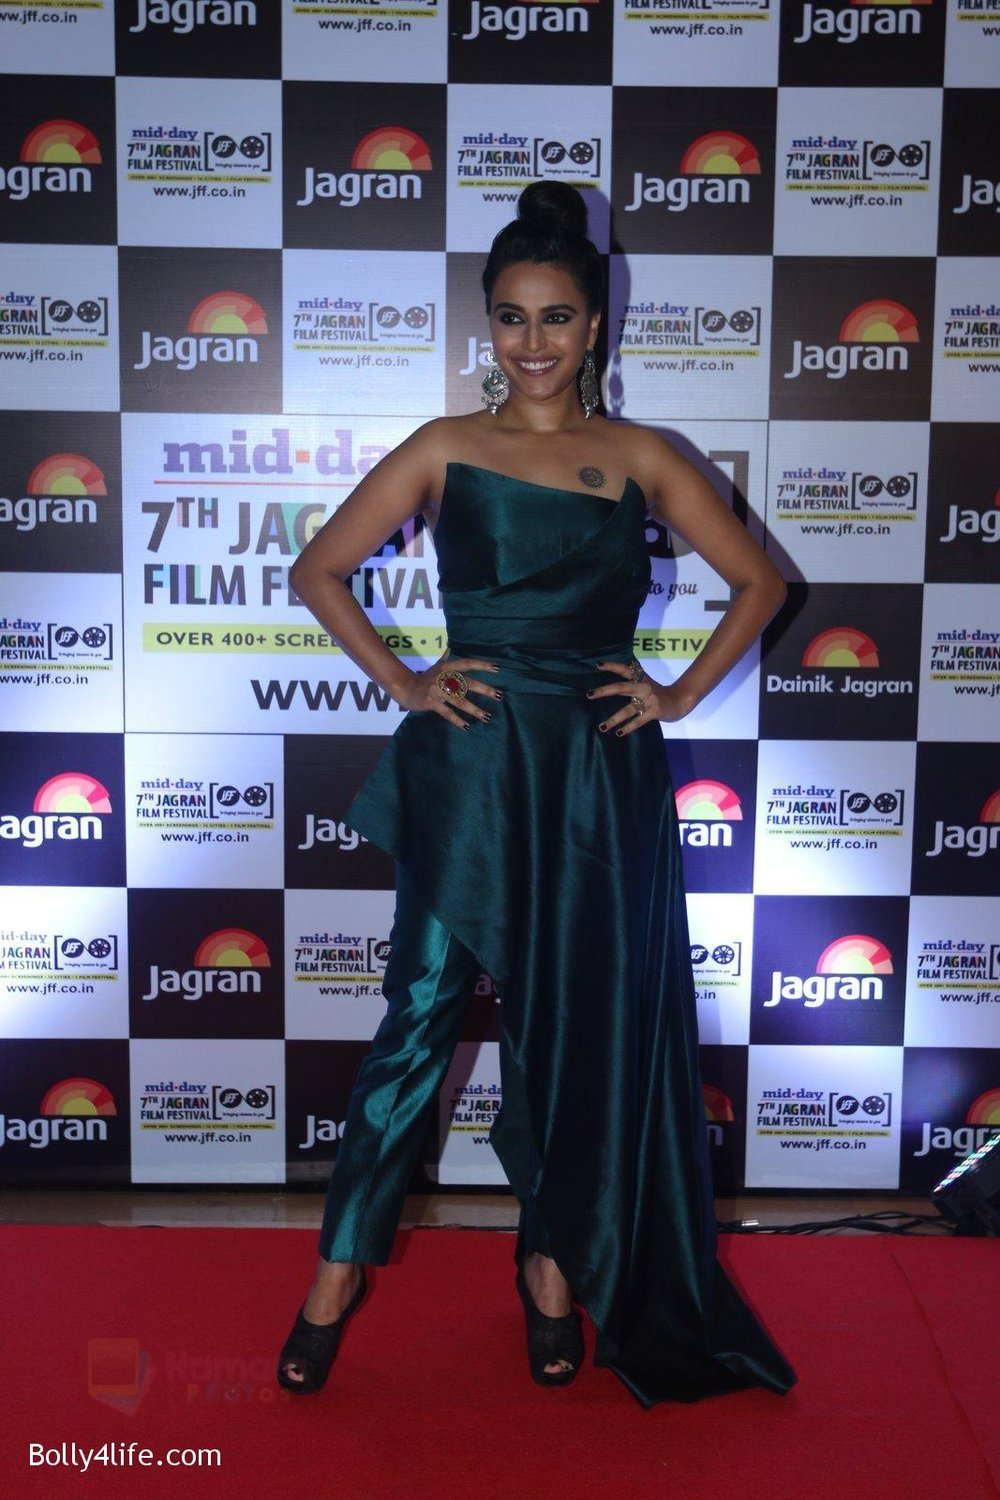 Swara-Bhaskar-at-Jagran-Film-fest-awards-on-30th-Sept-2016-72.jpg